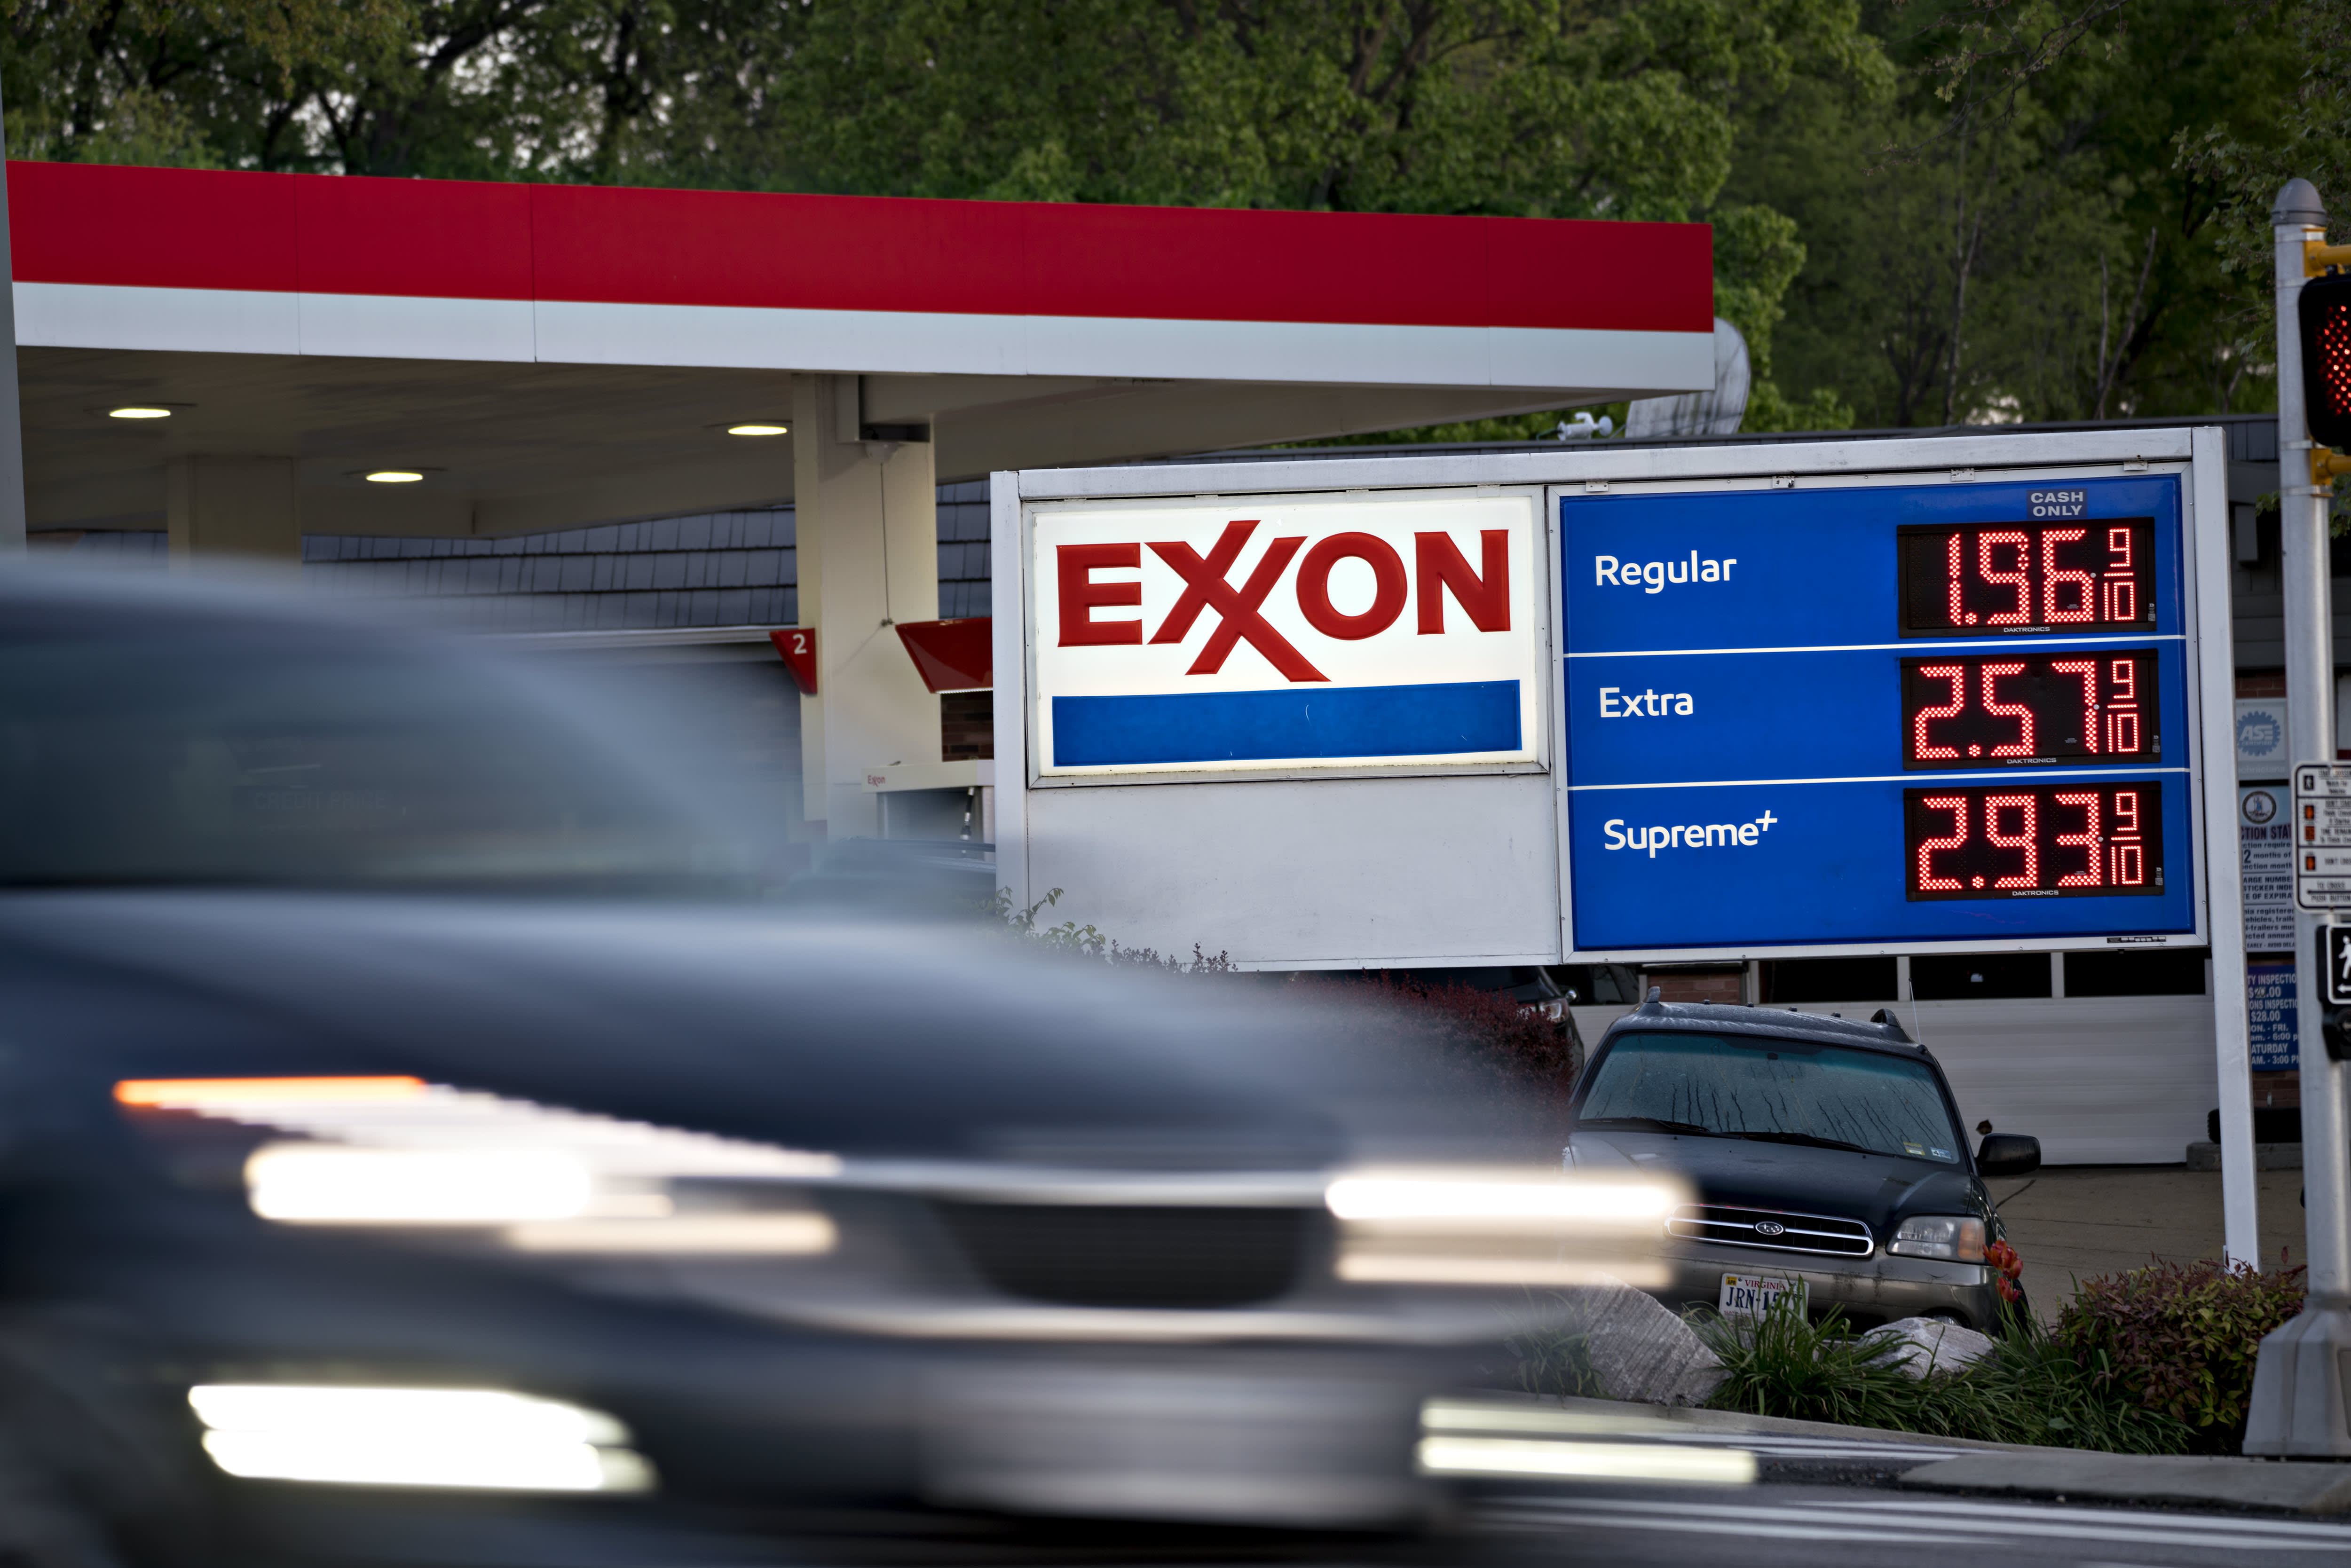 Exxon announces additional job cuts amid ongoing Covid-19 hit to oil demand – CNBC